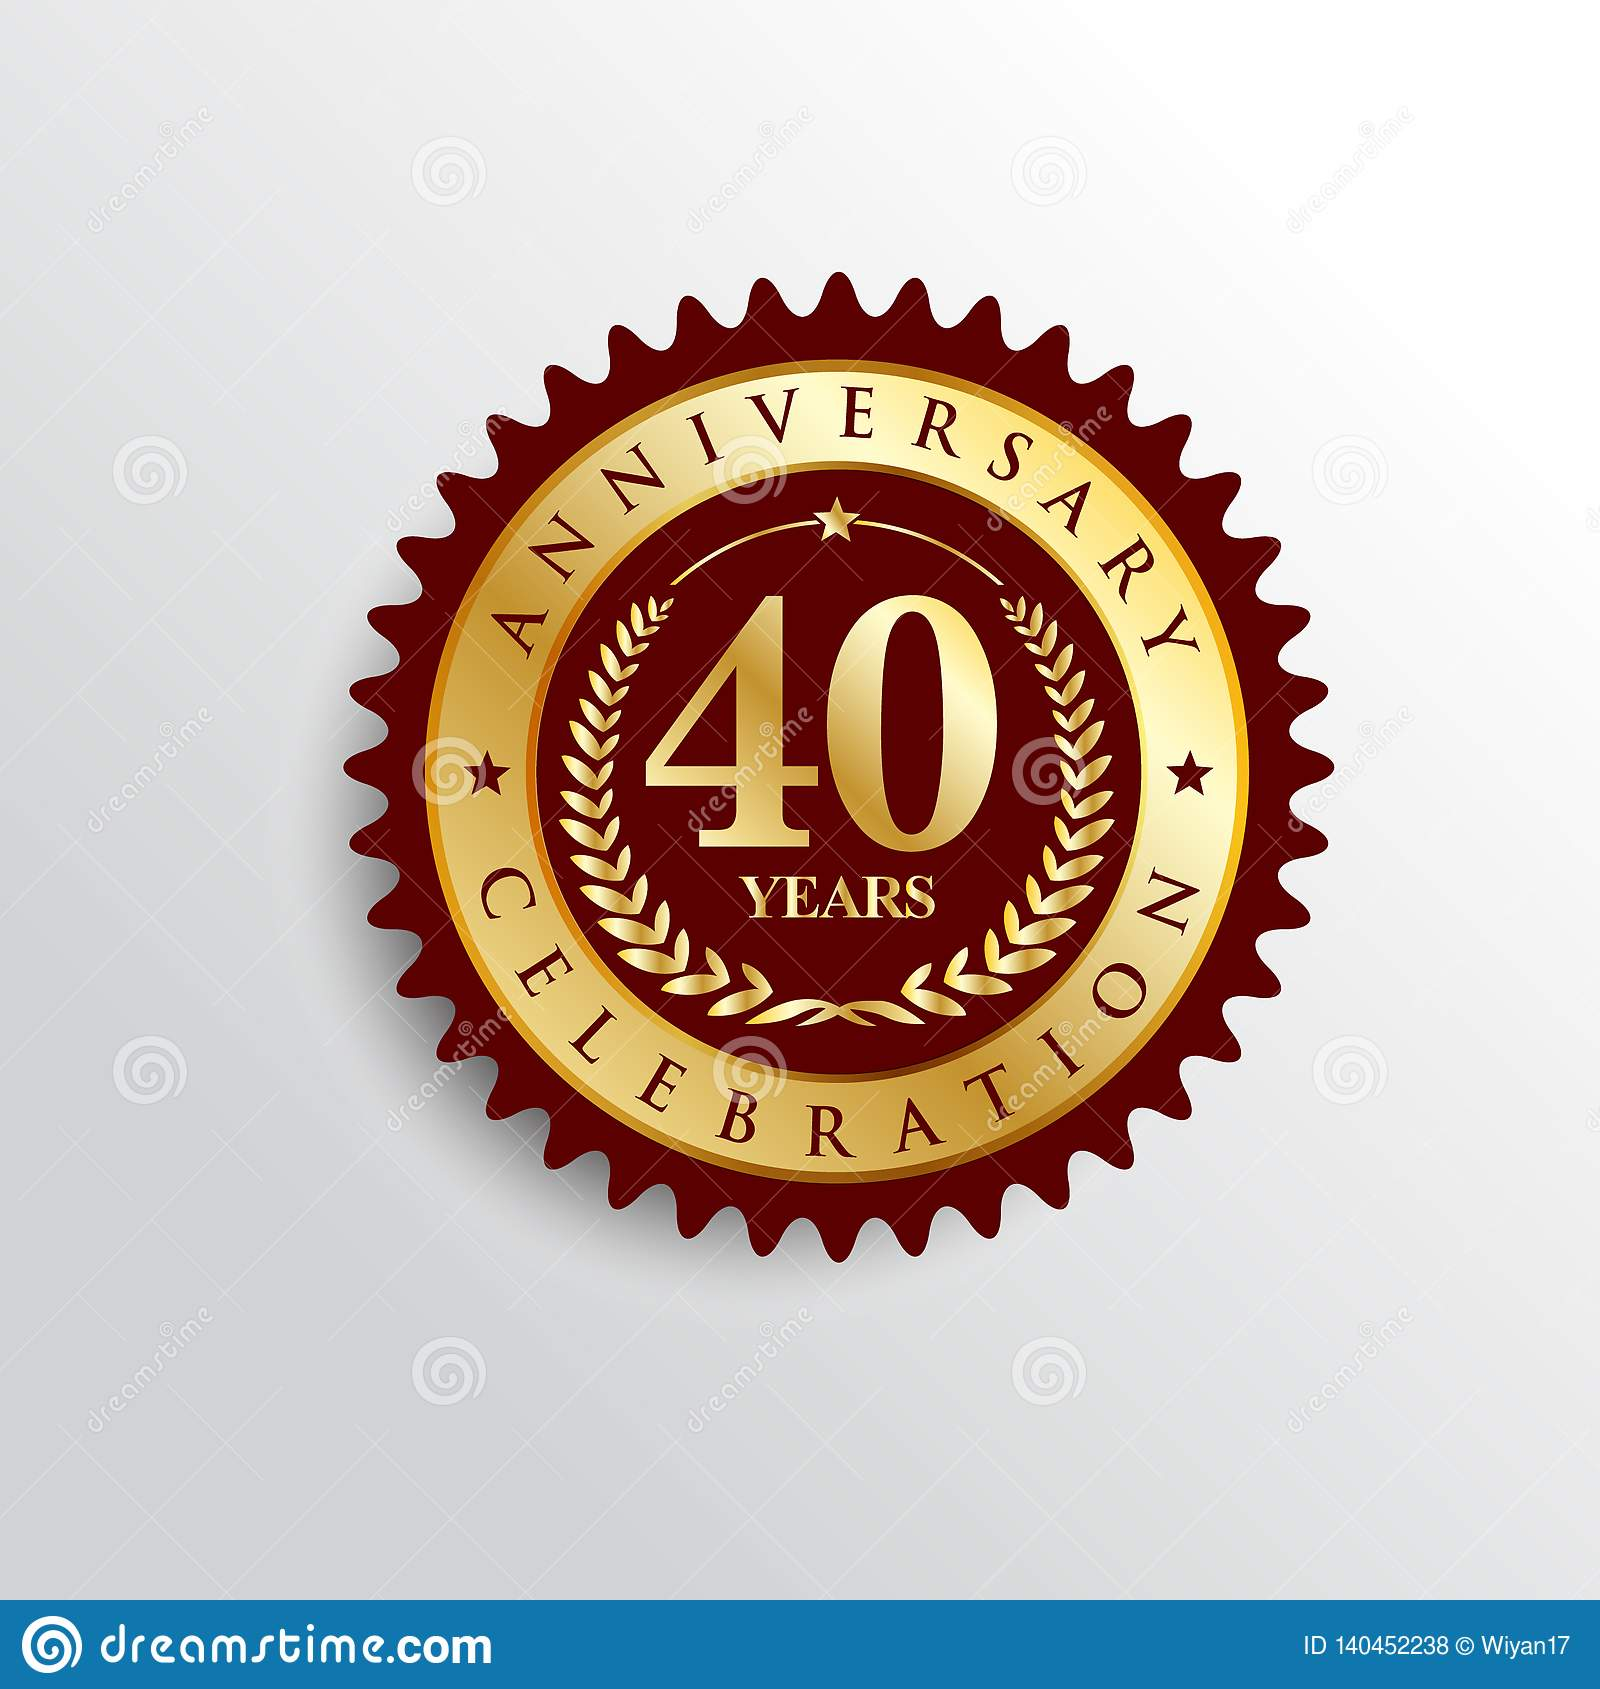 40 Years anniversary celebration Golden badge logo.